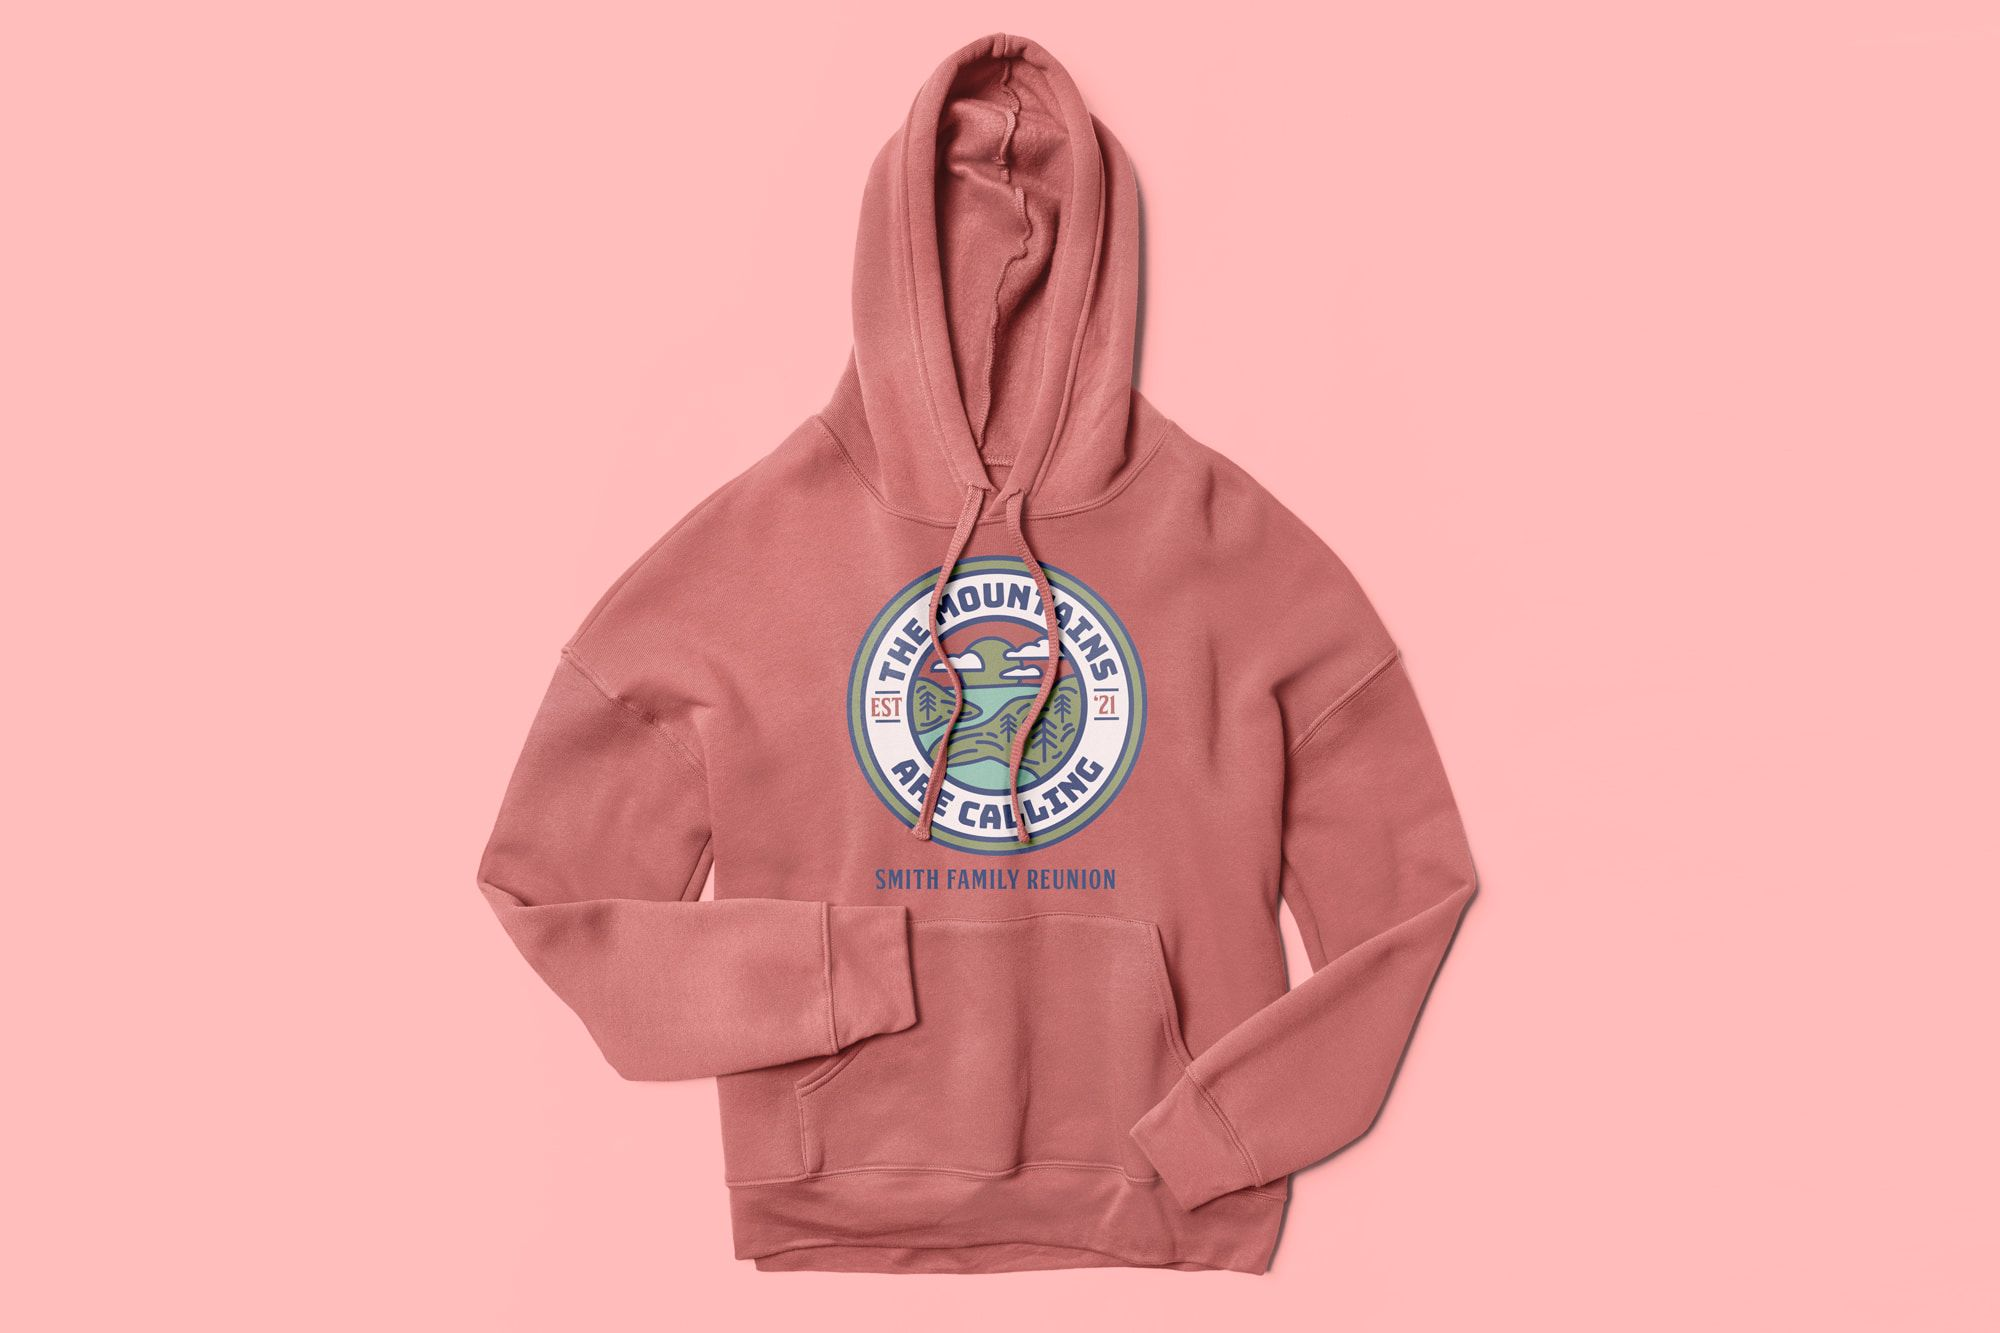 Flatlay of the Bella Canvas Sponge Fleece Pullover Hoodie with a custom family reunion design.